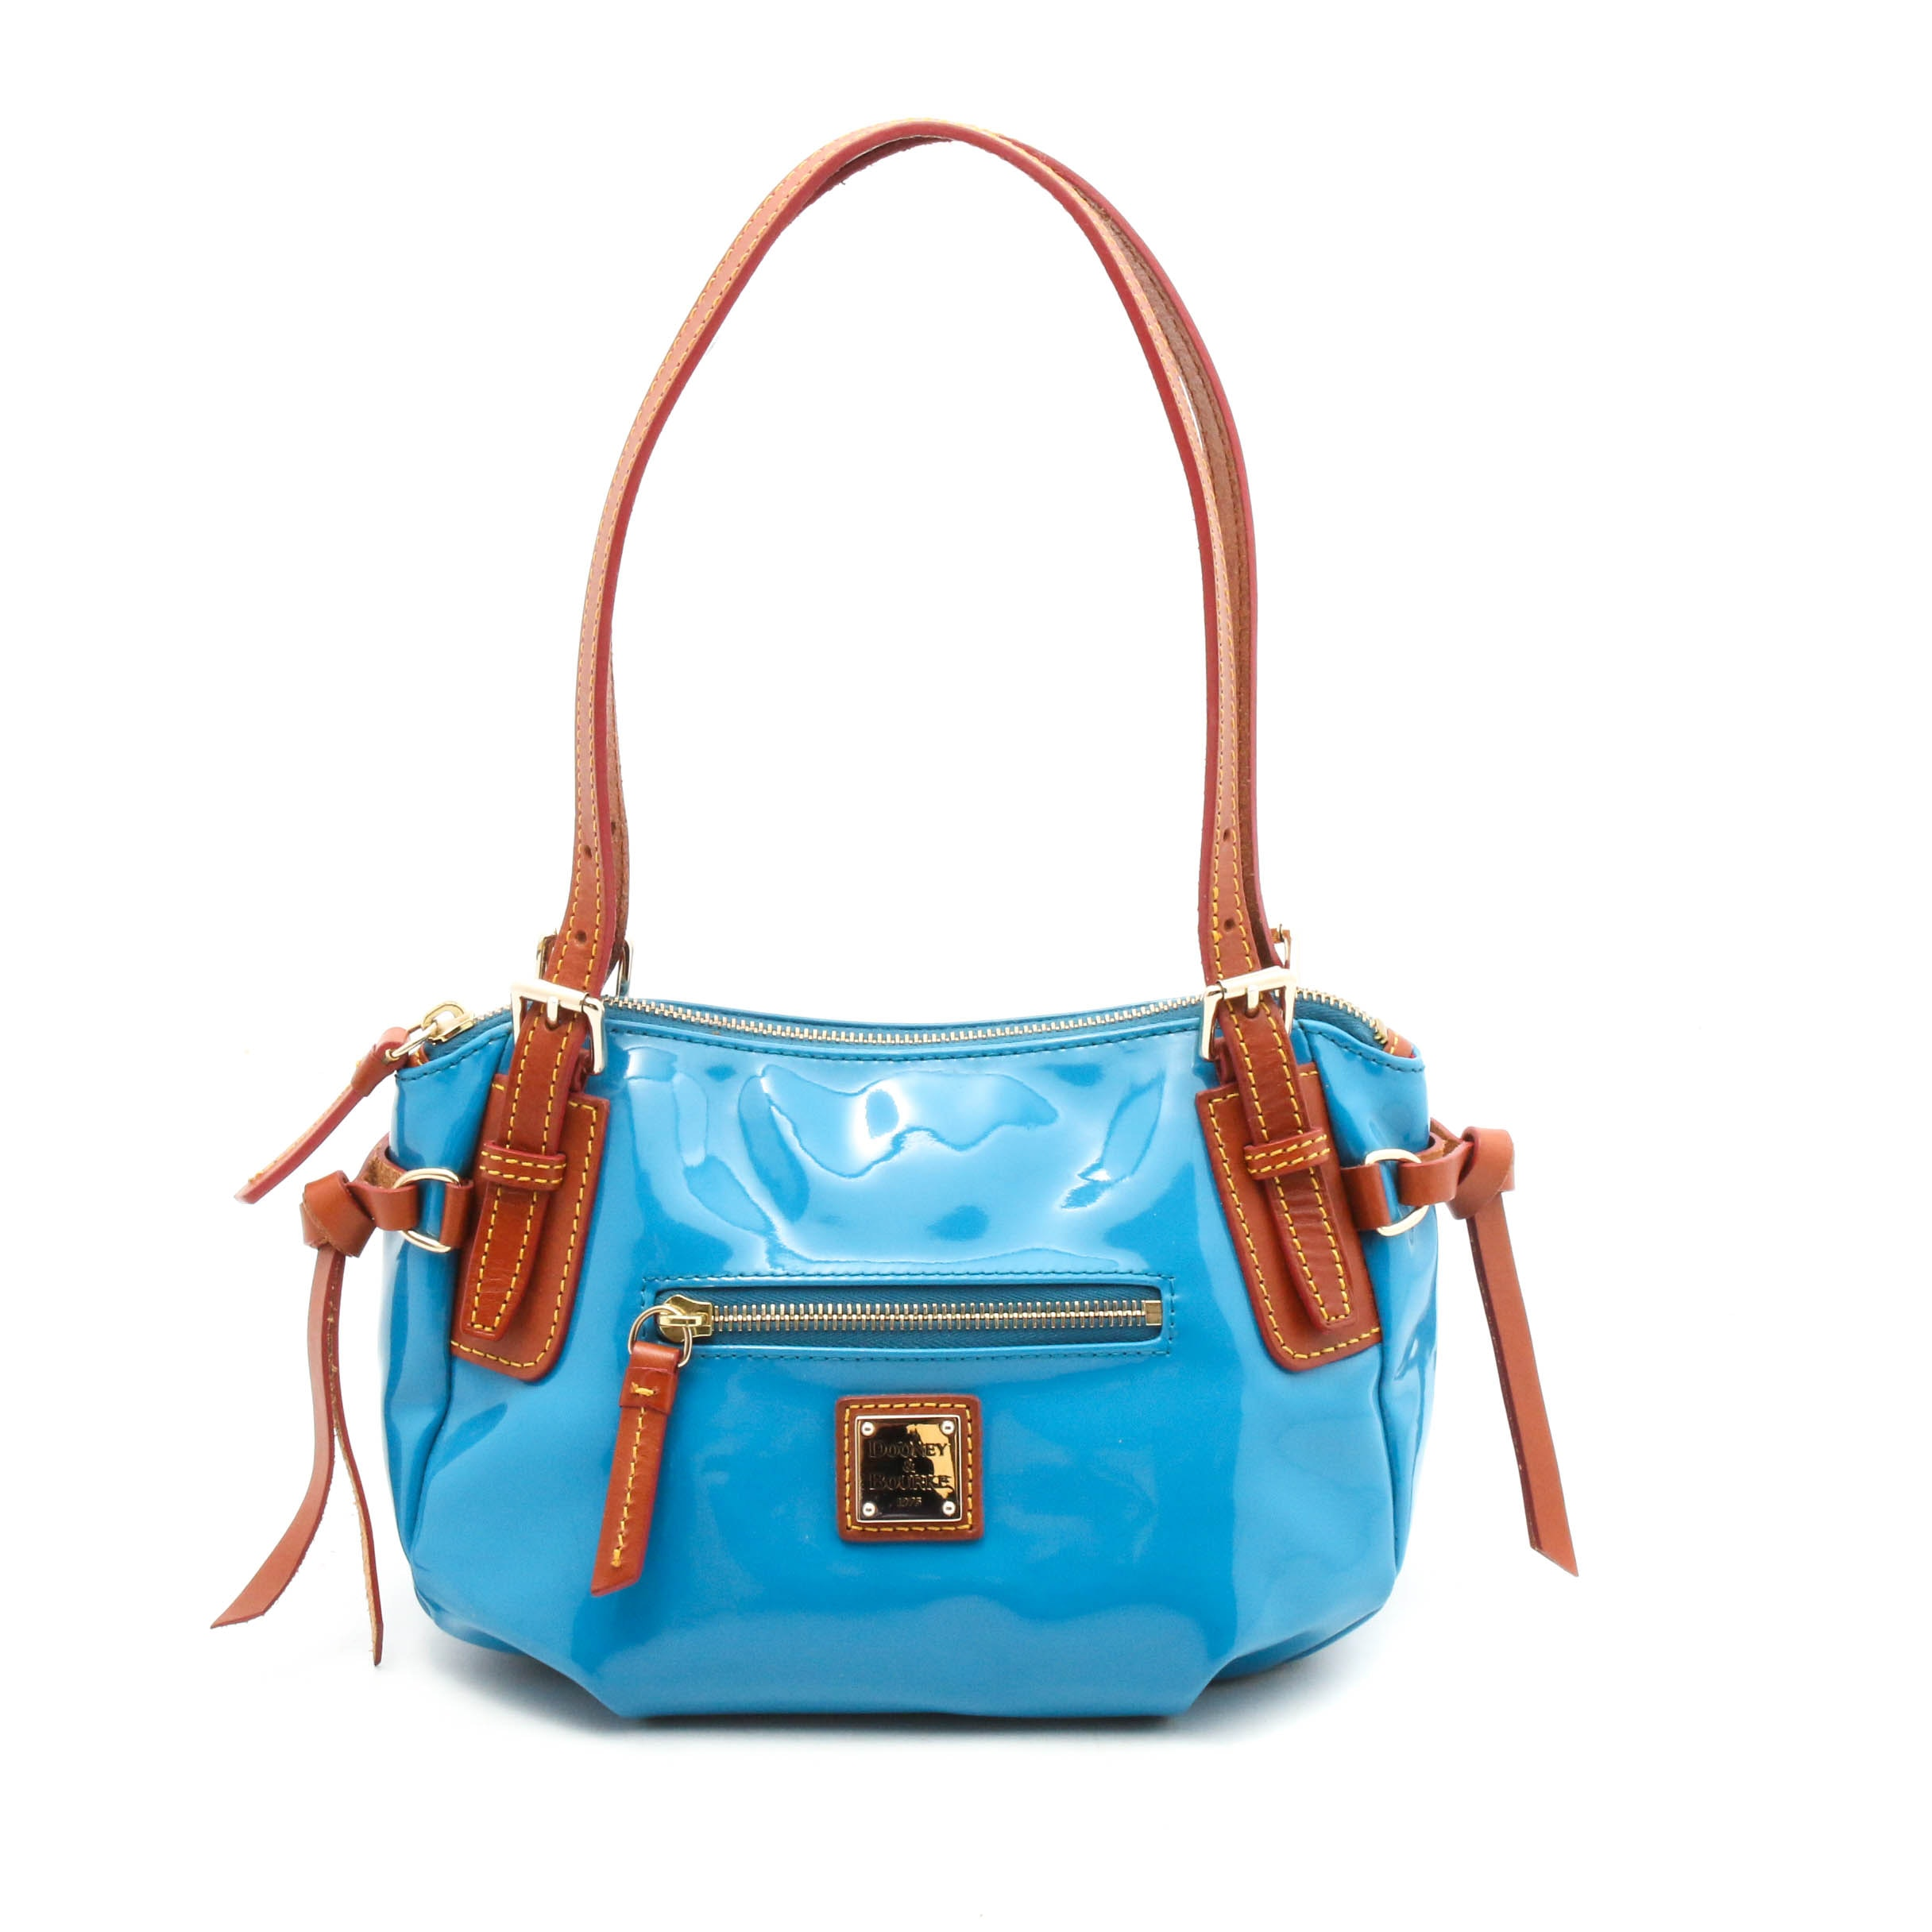 Dooney & Bourke Blue Patent Leather and Brown Leather Top Handle Handbag